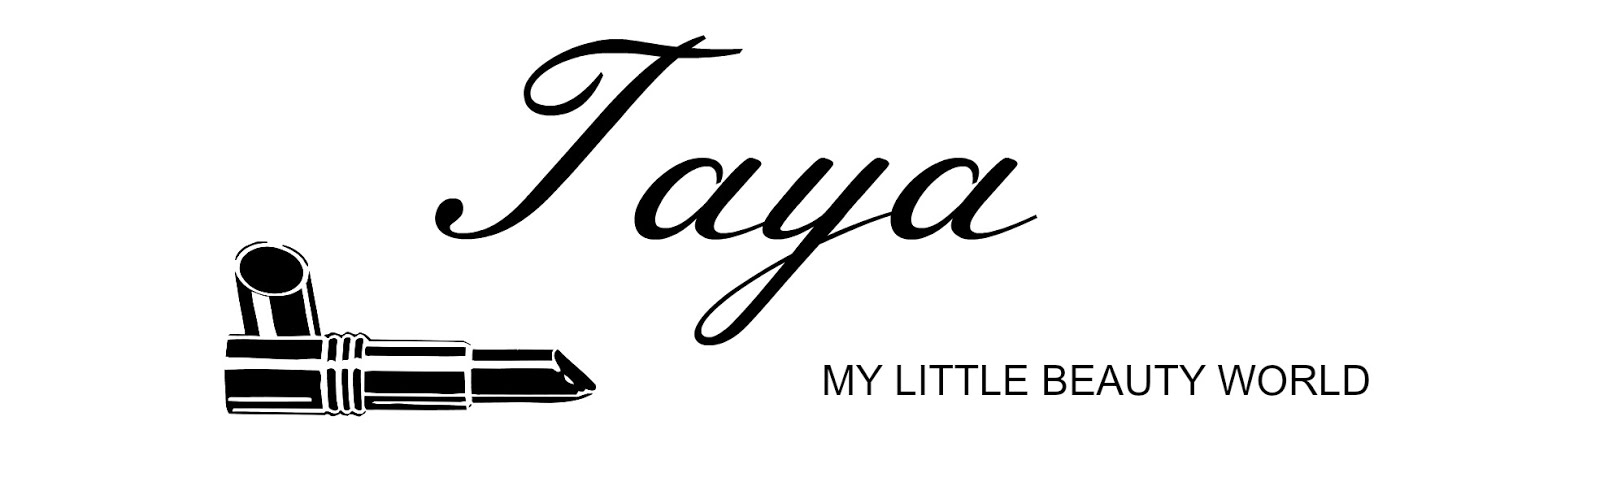 Taya - My Little Beauty World